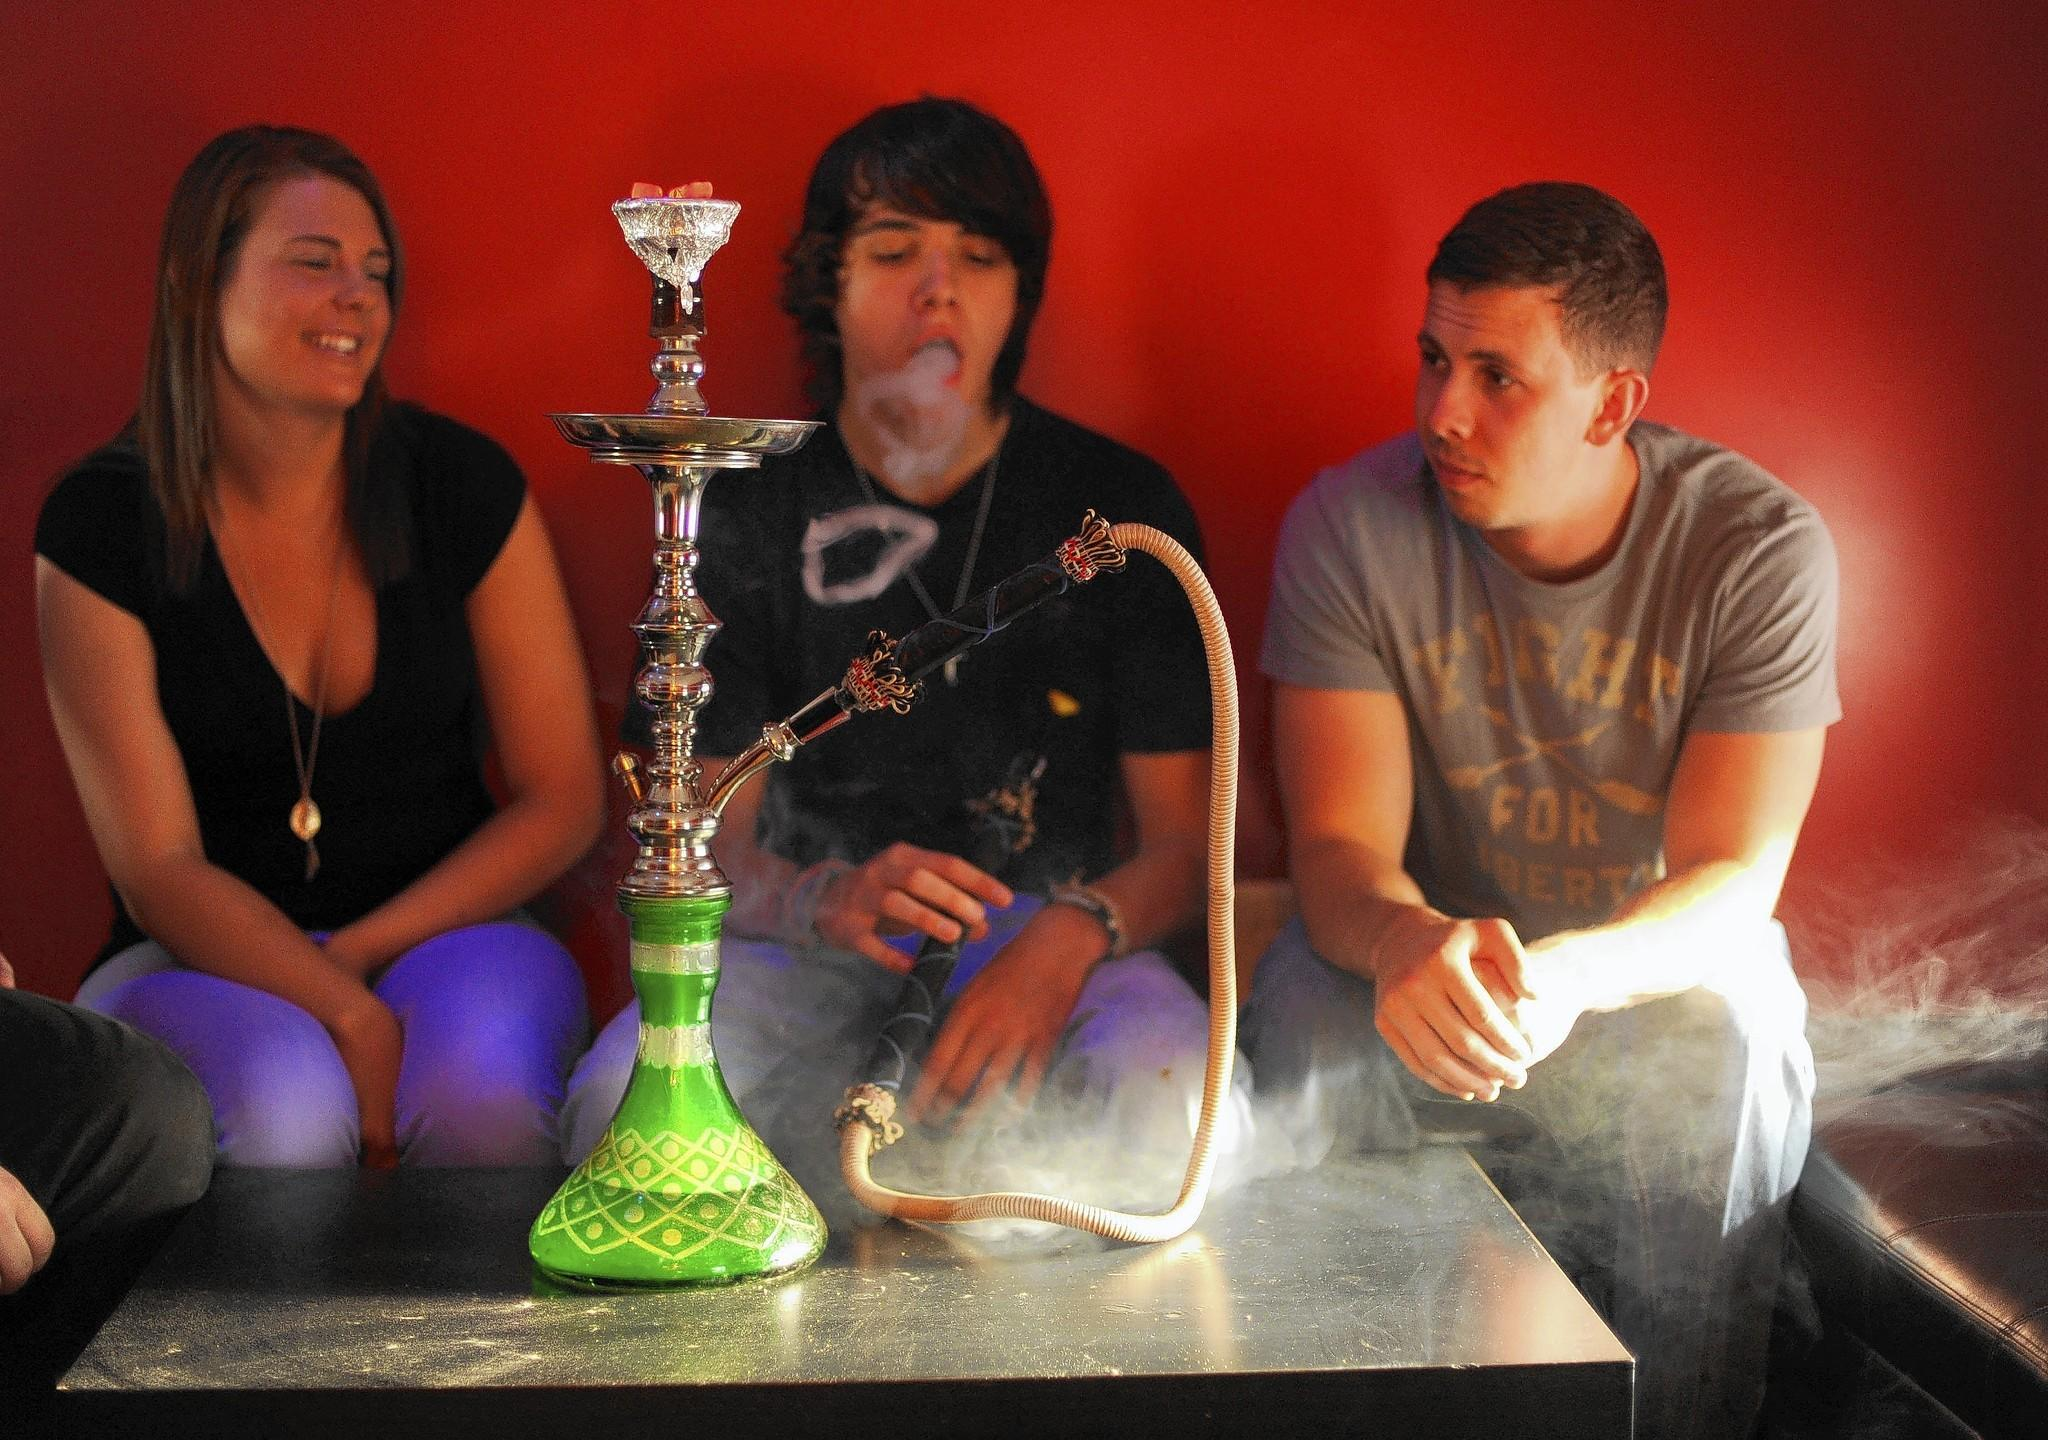 Smoking at the Ghost Lounge Hookah Bar in Ellicott City